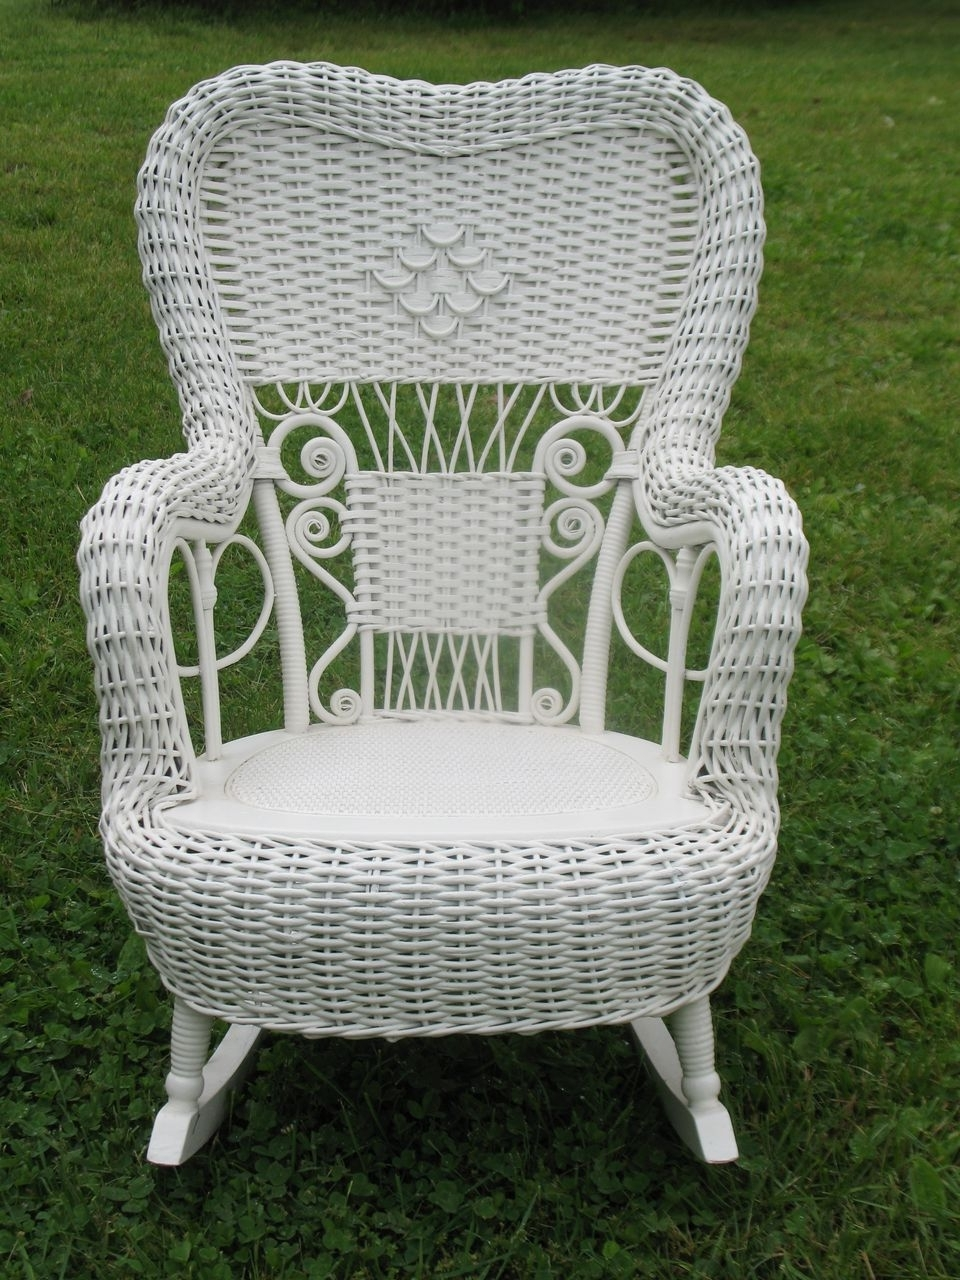 Fashionable Outdoor Vintage Wicker Rocking Chair With Green Color Chairs Rocker Inside Vintage Wicker Rocking Chairs (View 5 of 20)